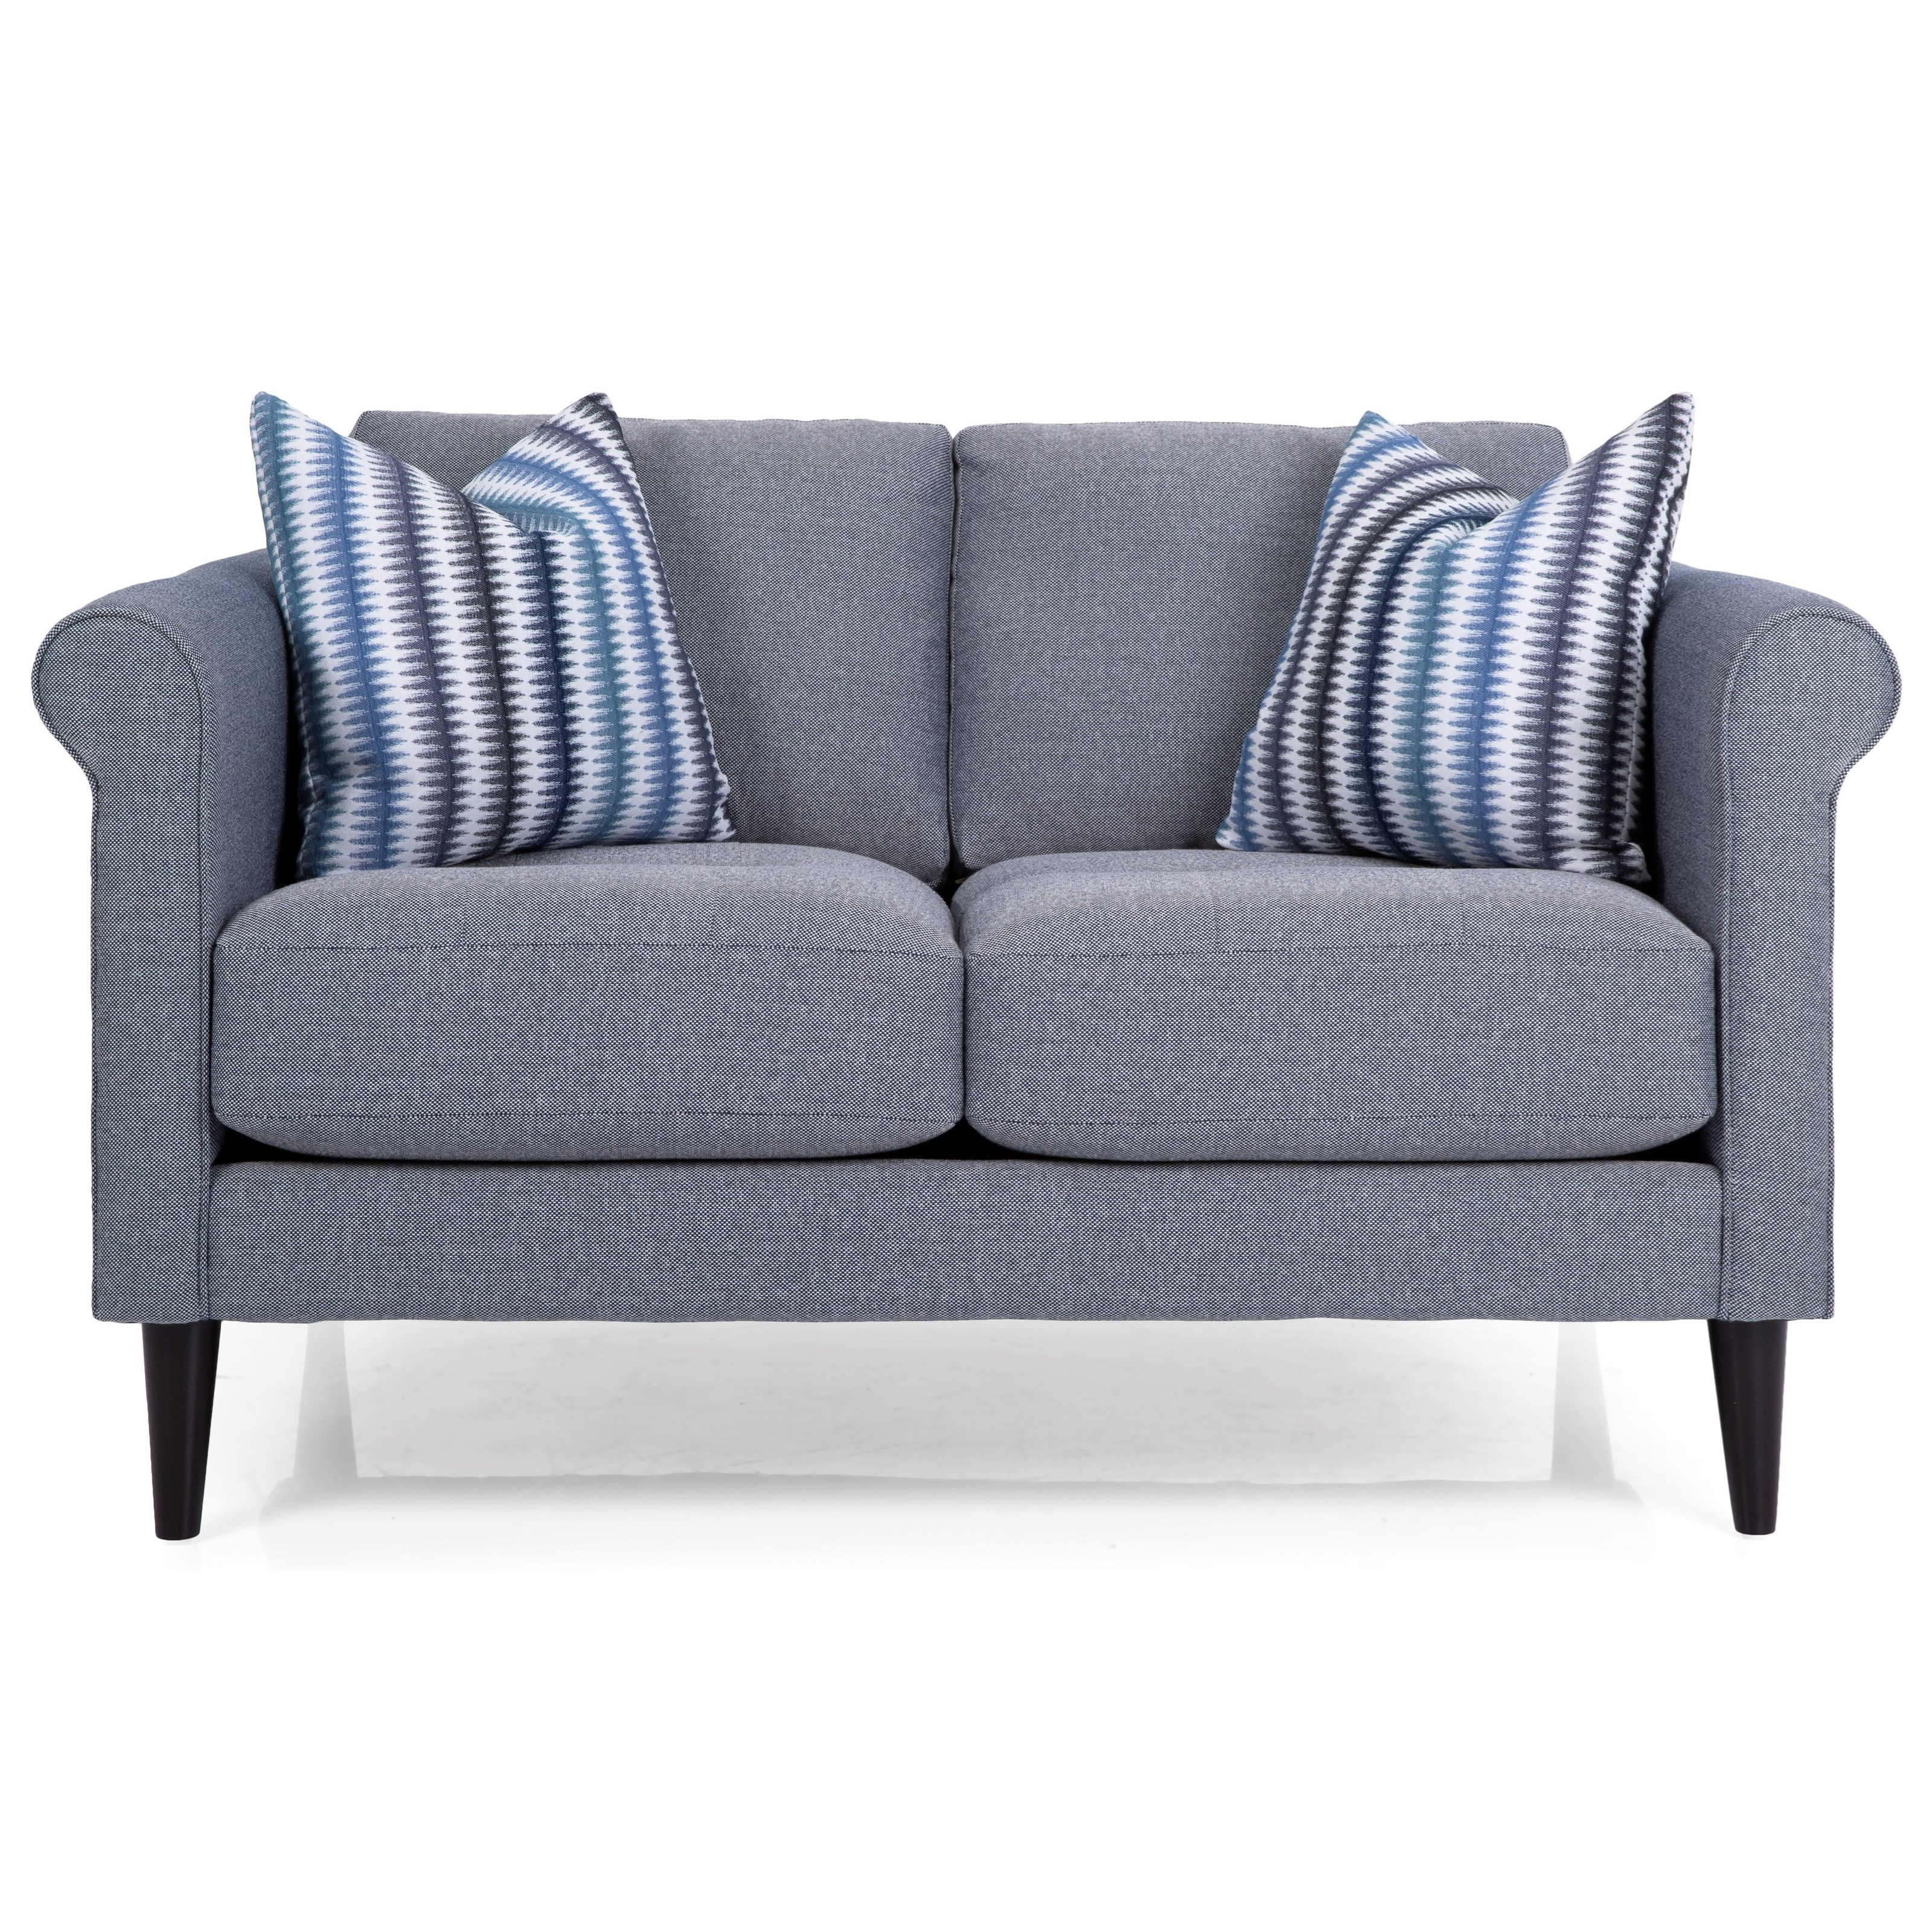 2M1 Loveseat by Decor-Rest at Stoney Creek Furniture